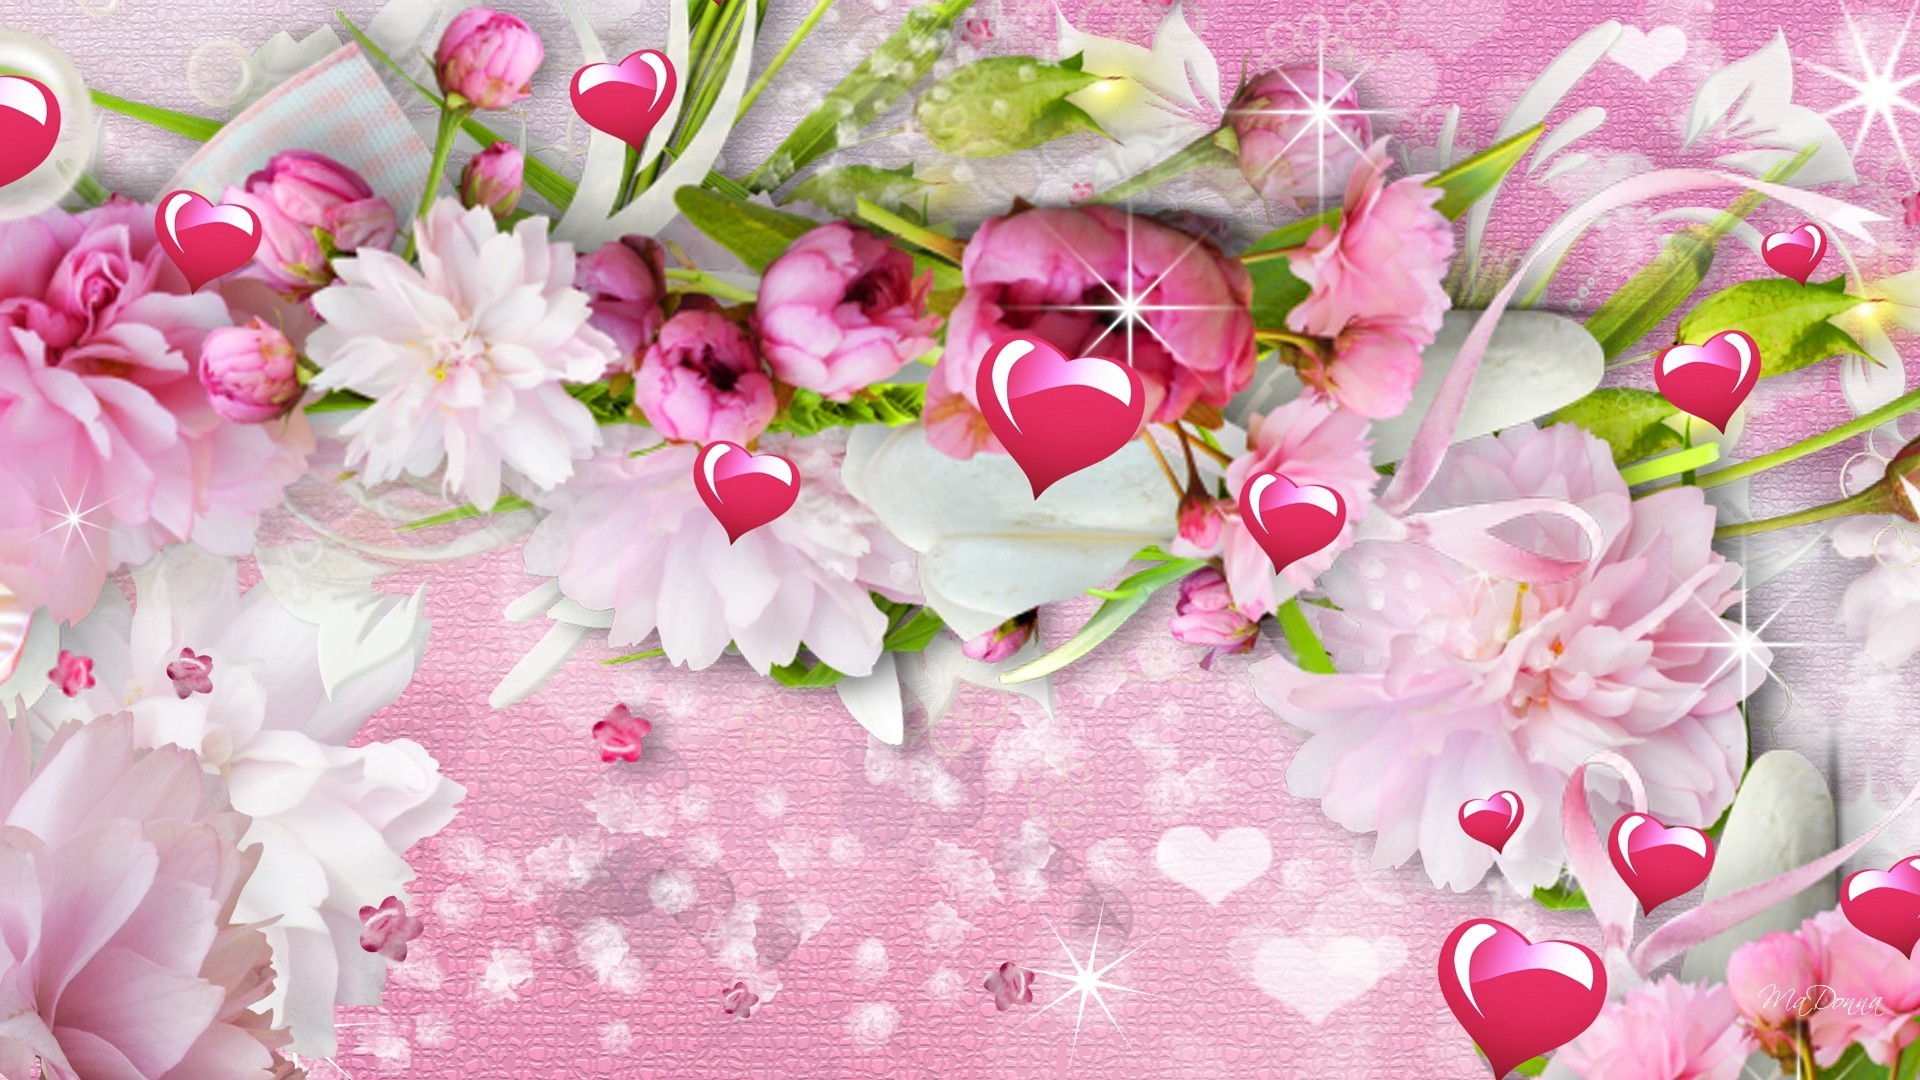 1920x1080 Peonies Tag - Flowers Spring Pink Stars Sparkle Valentines Day Hearts  Peonies Summer Jasmine Flower Wallpaper